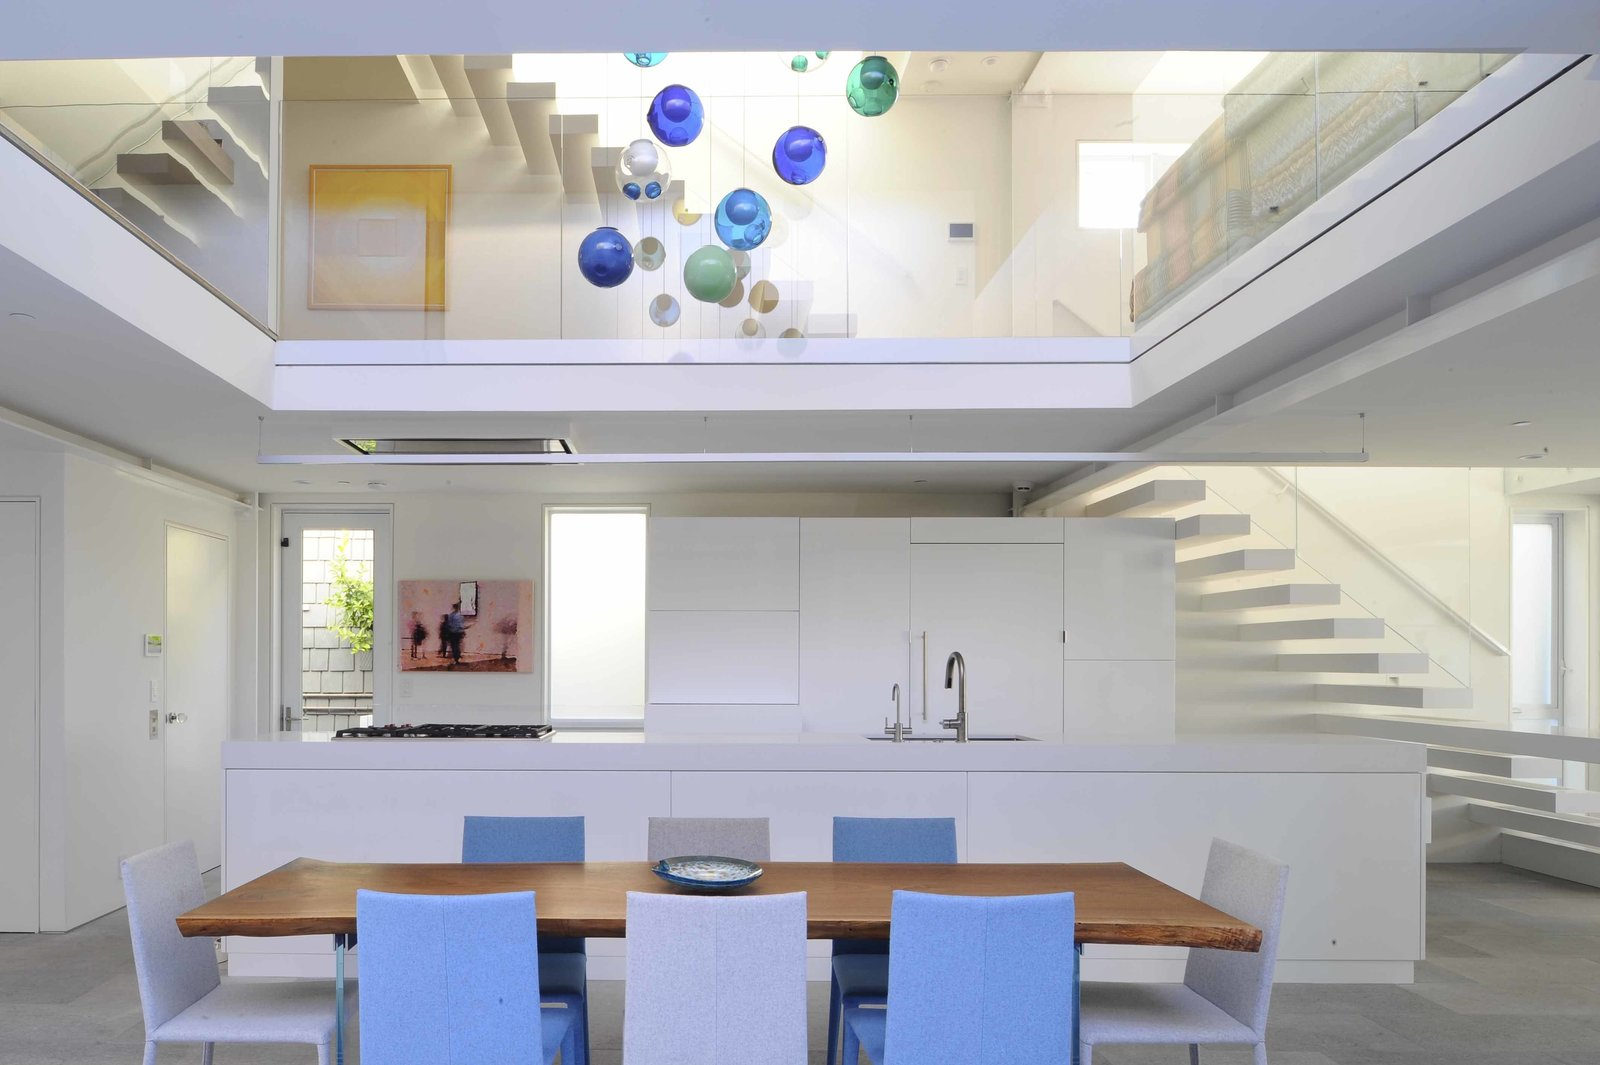 Kitchen, Pendant, White, Limestone, Quartzite, Ceiling, Refrigerator, Microwave, Dishwasher, Wine Cooler, Range, Range Hood, and Undermount The all-white kitchen is open to the upper level. One tread of the stairs extends out to become a countertop and the live-edge dining room table is surrounded by blue and grey chairs that are part of a palette inspired by the beach setting.  Best Kitchen Microwave Range Hood Limestone Ceiling Dishwasher Refrigerator Photos from Beach House